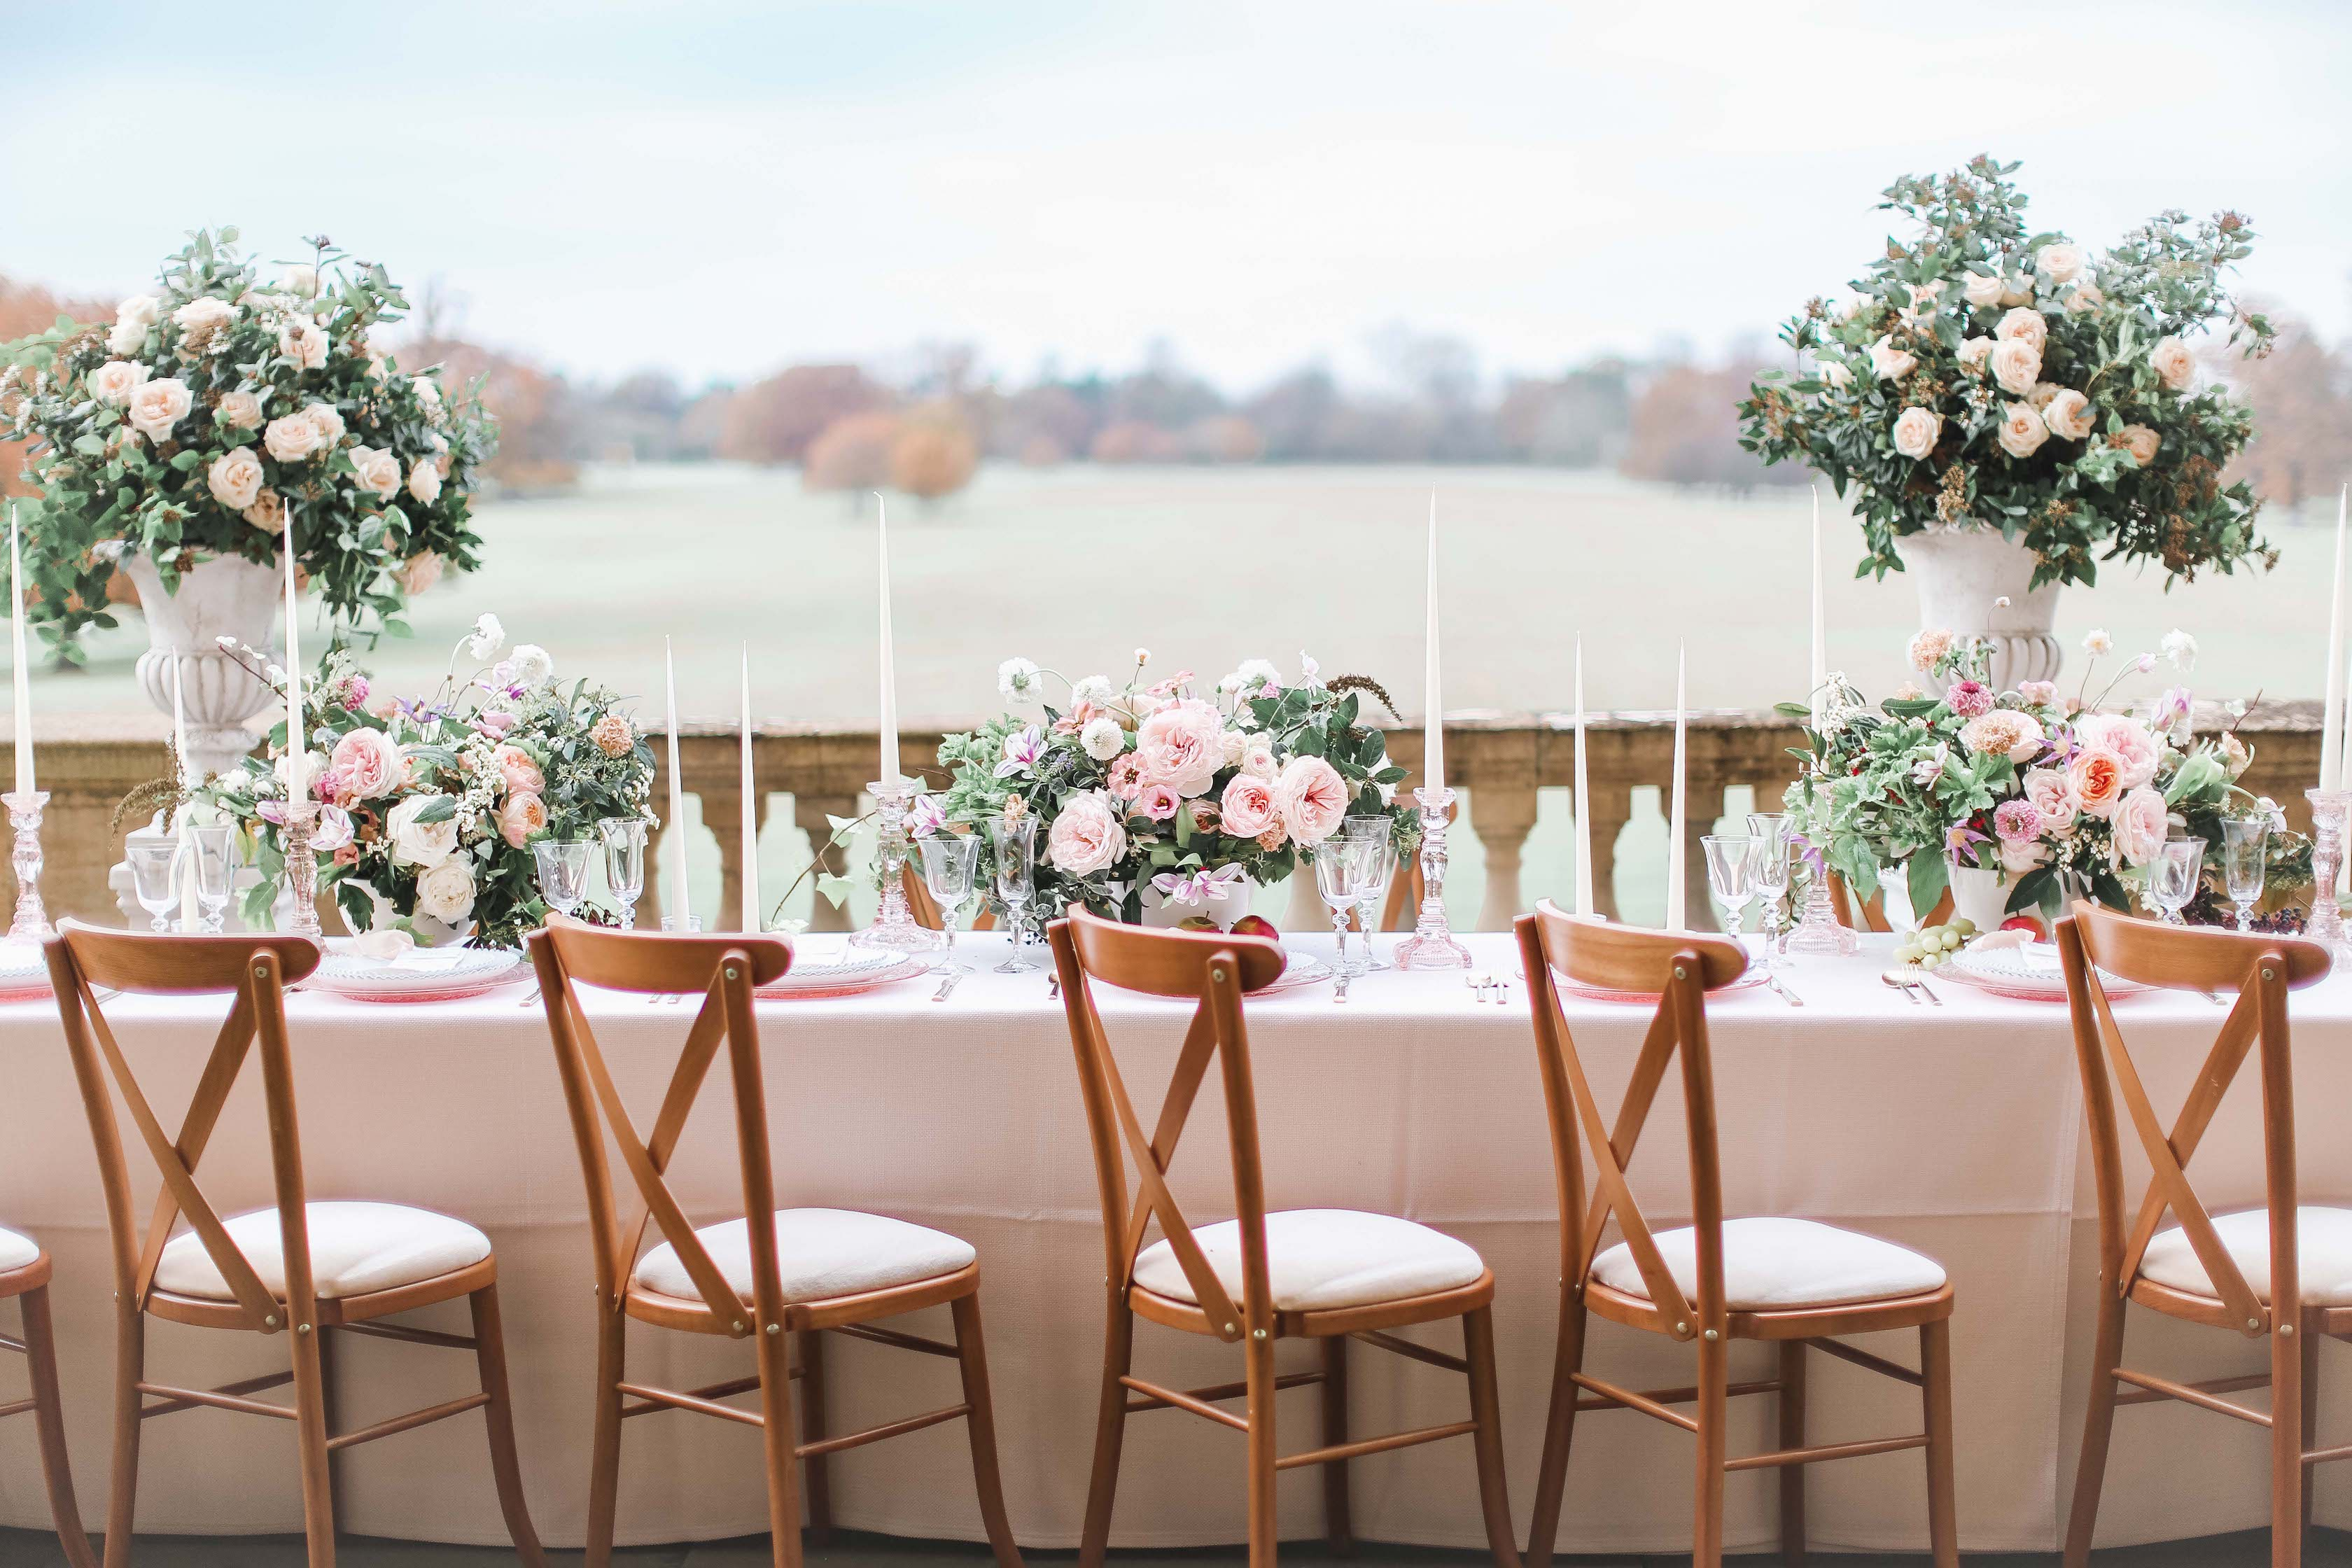 Rose Table Wedding Centrepieces - Wild Anemones - Pedestal Centrepieces - Tapered Candles  - Blush Wedding